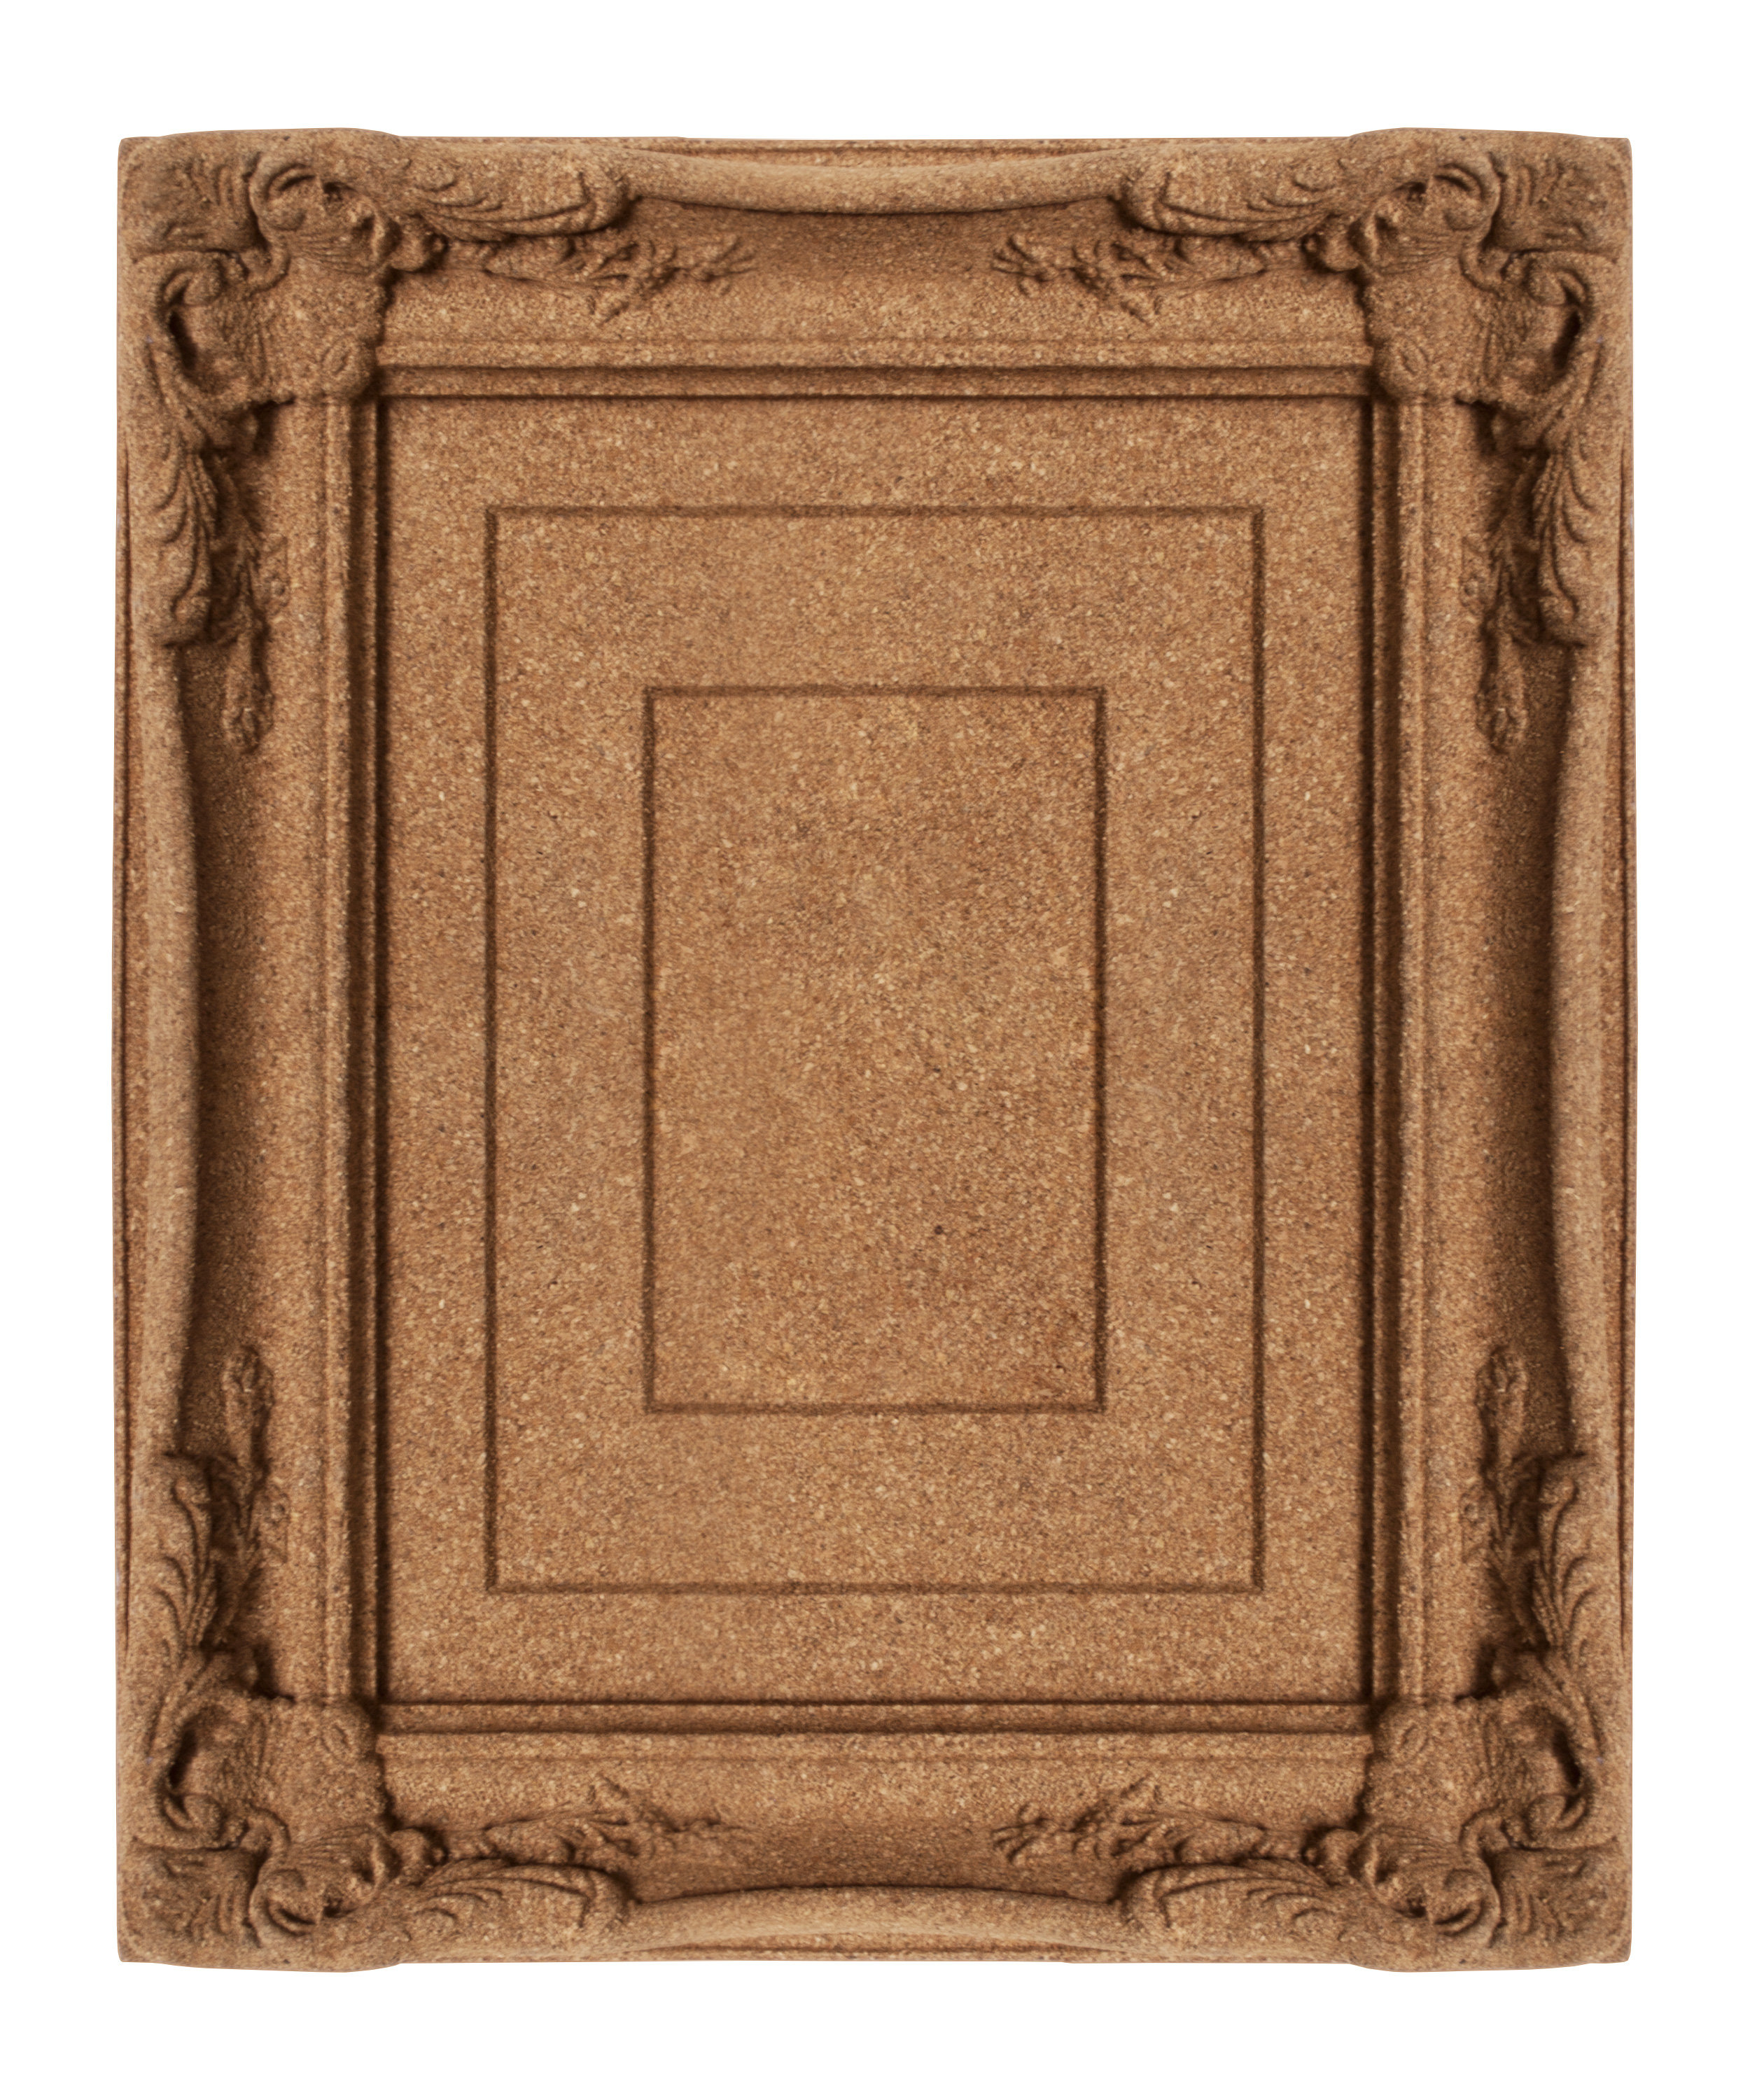 12 Fascinating Facts About The Roma - Ranker Cork board photo frame